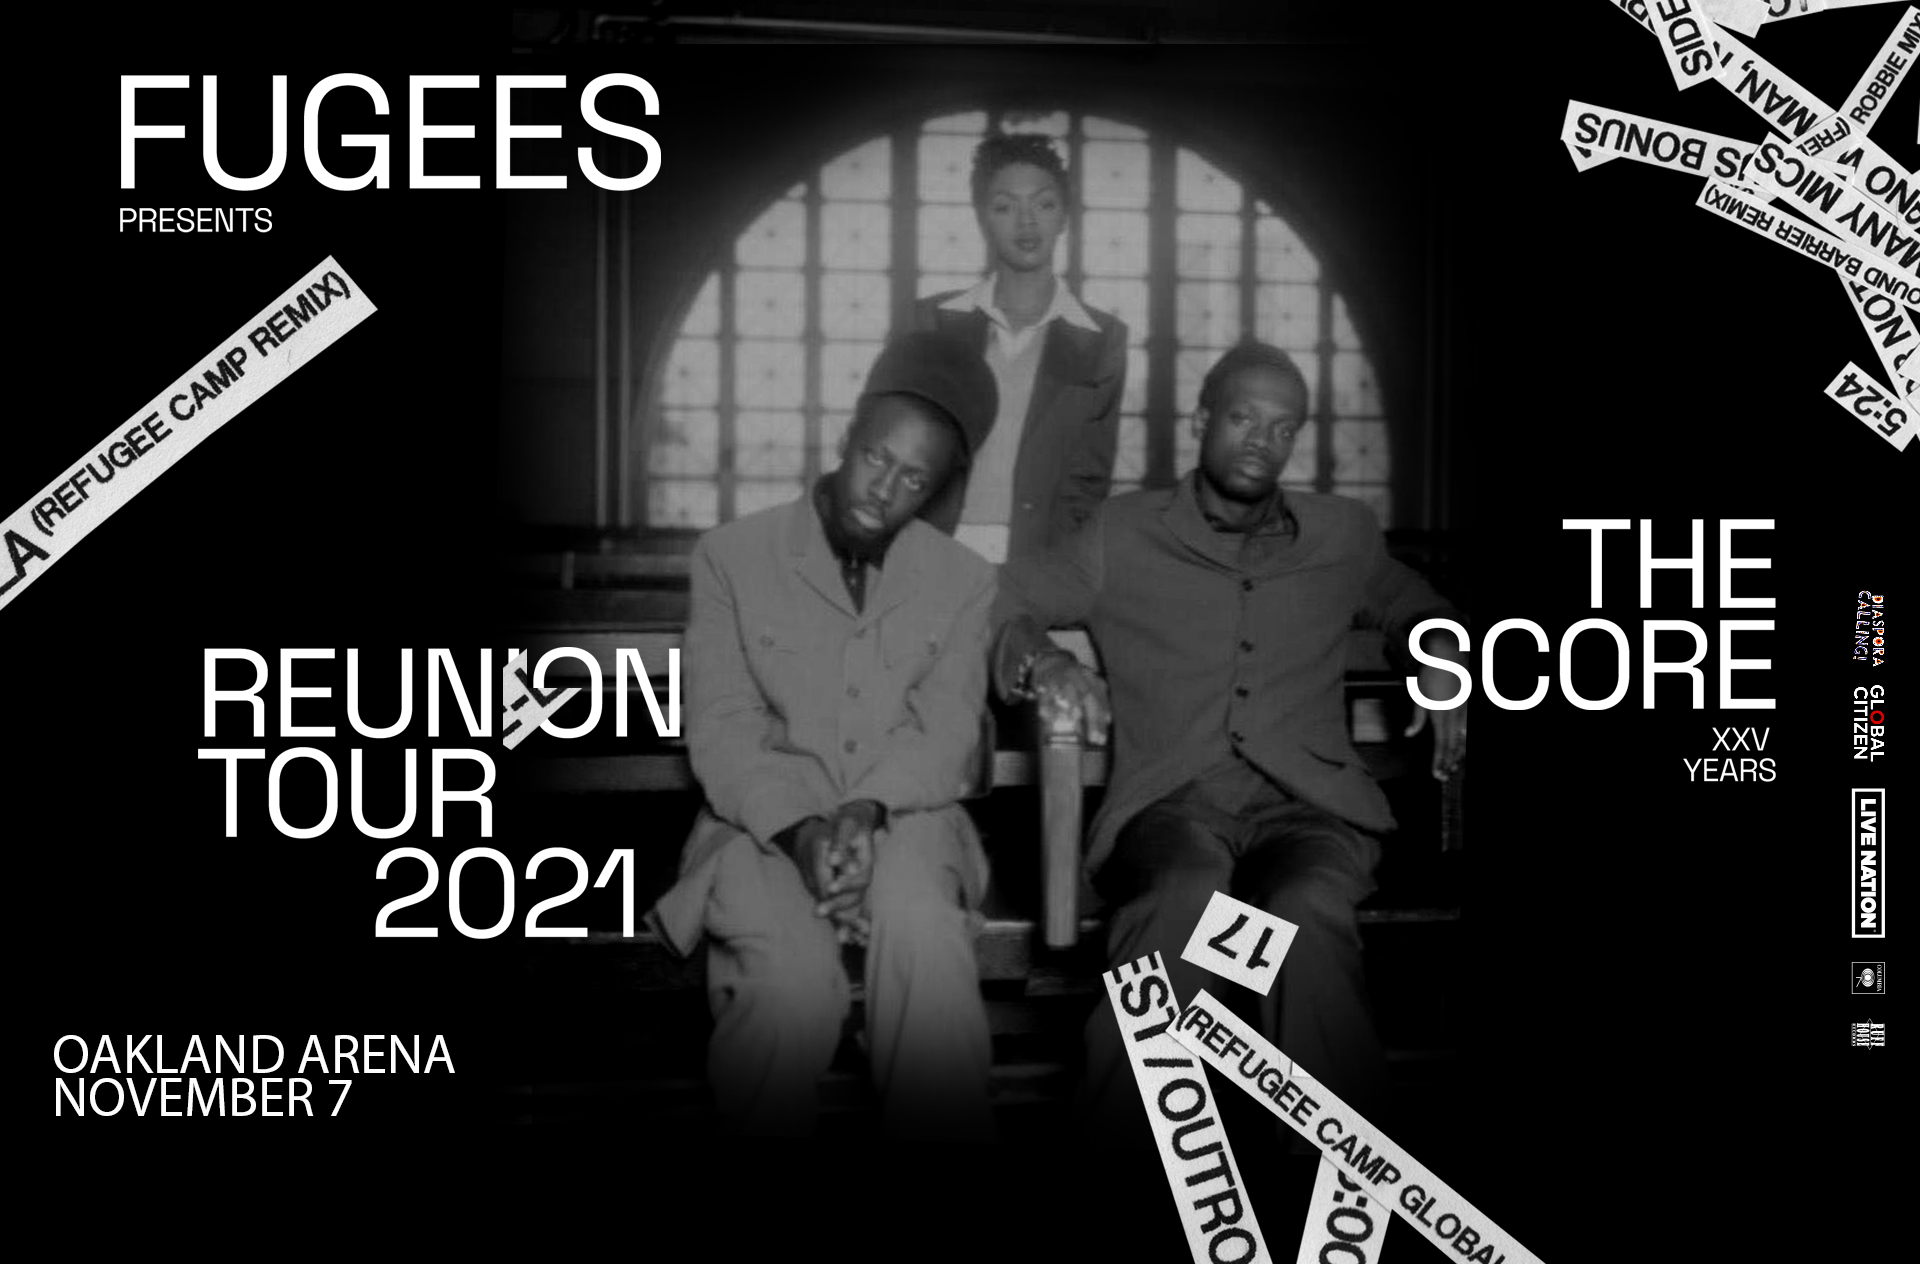 More Info for The Fugees